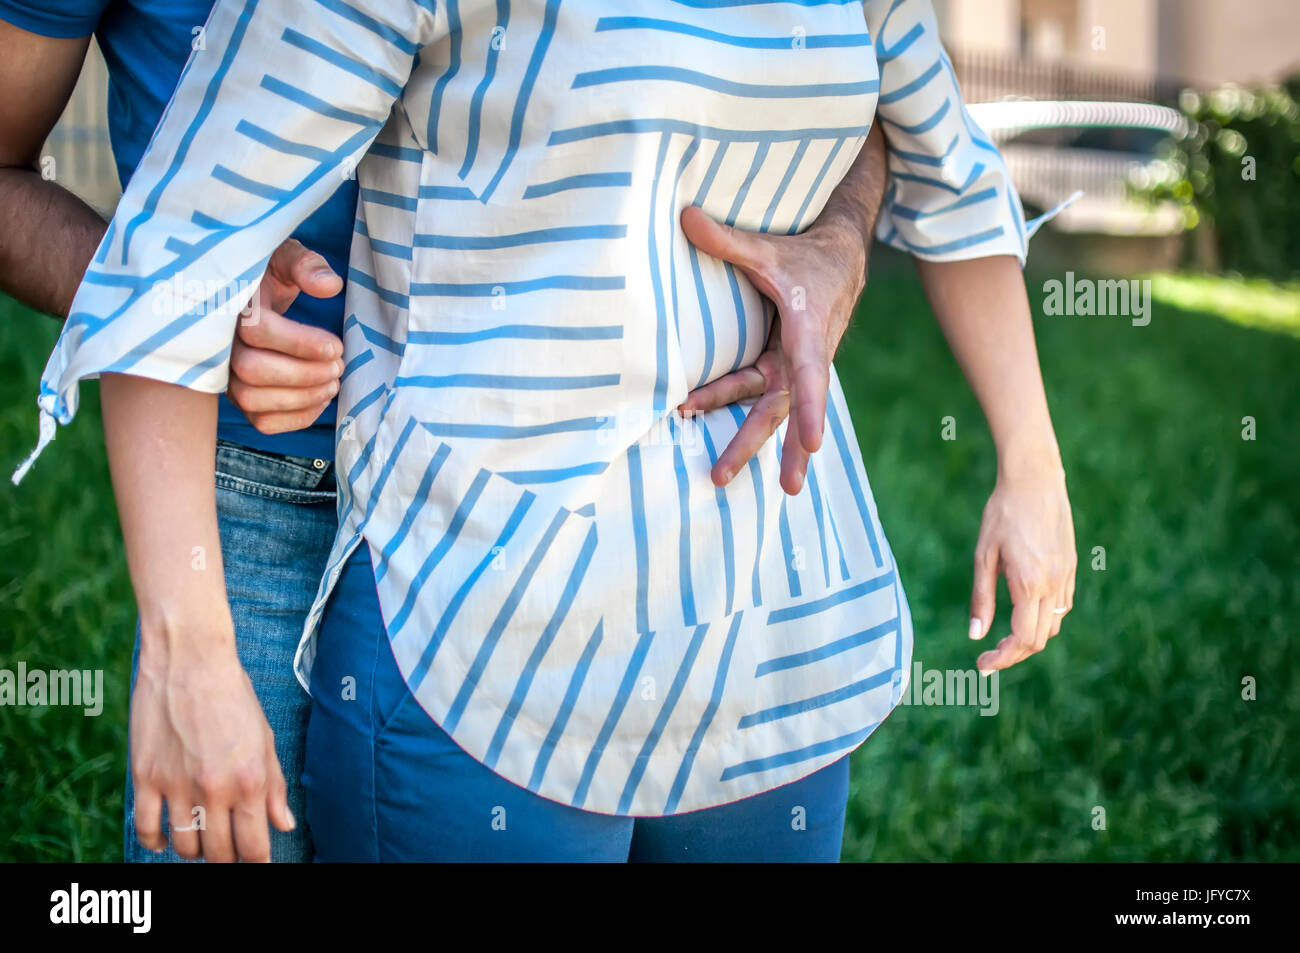 step for the heimlich maneuver procedure - Stock Image